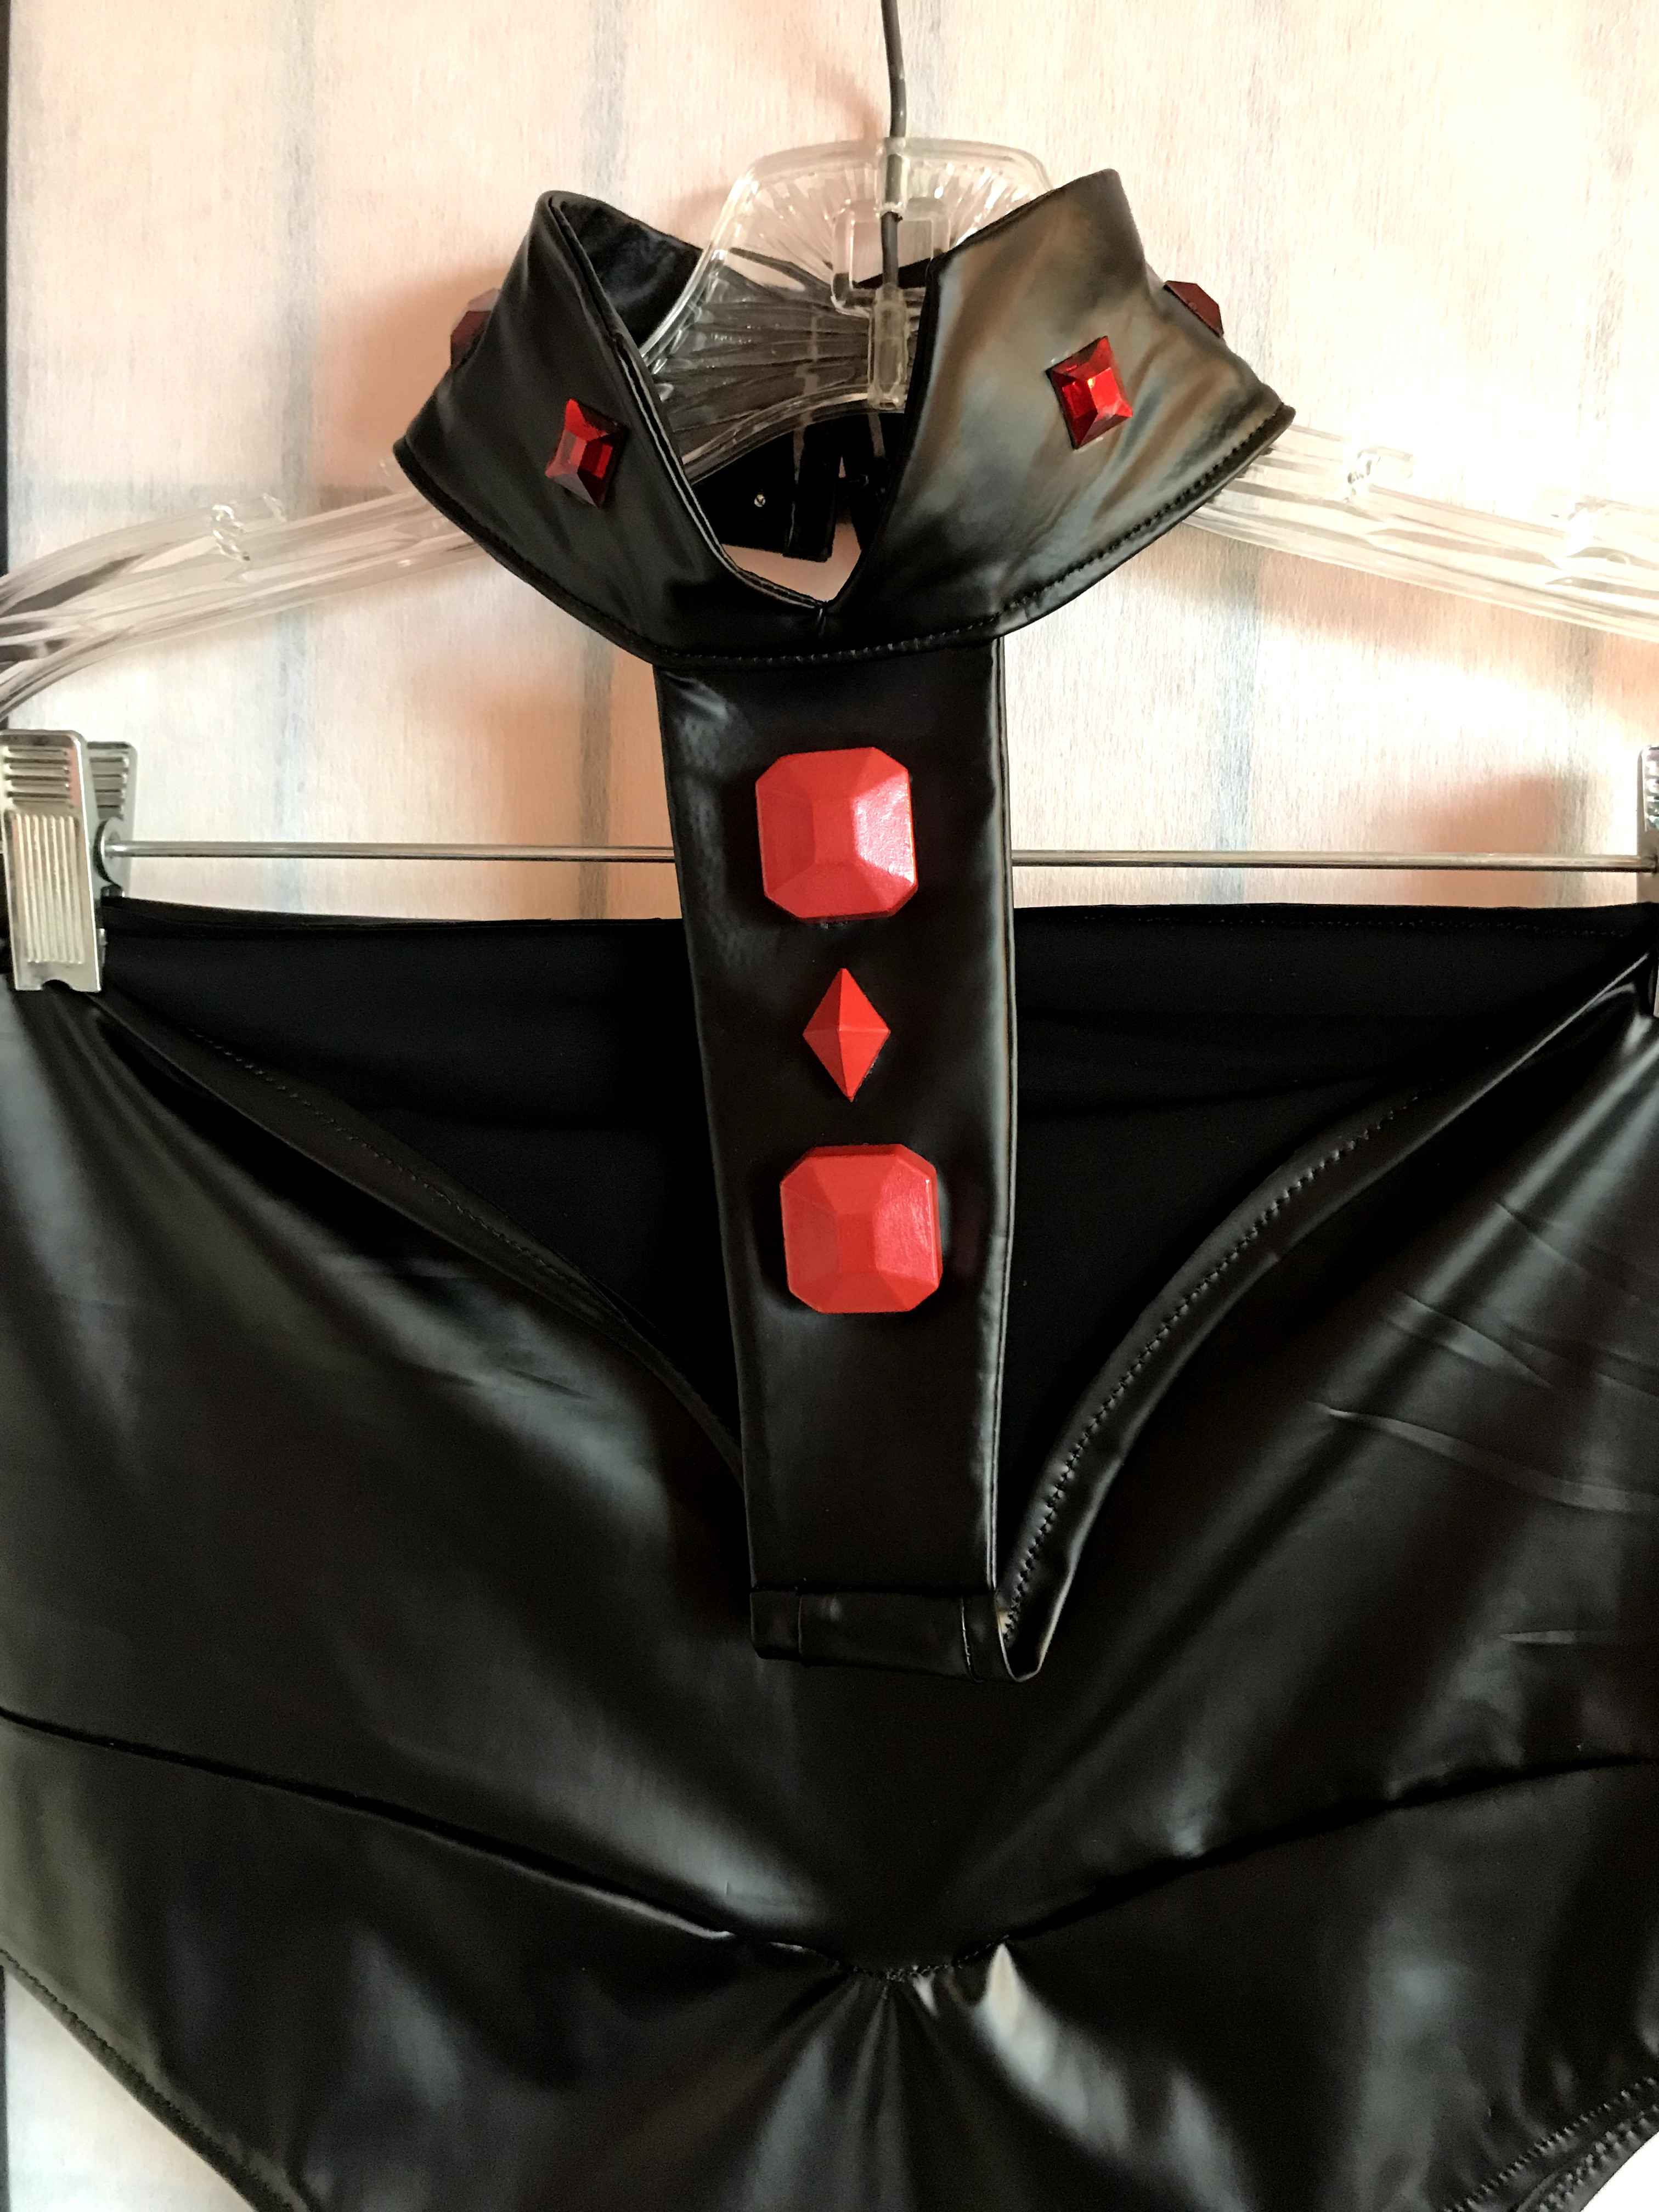 Close-up of the black bodysuit details for Midnight cosplay.